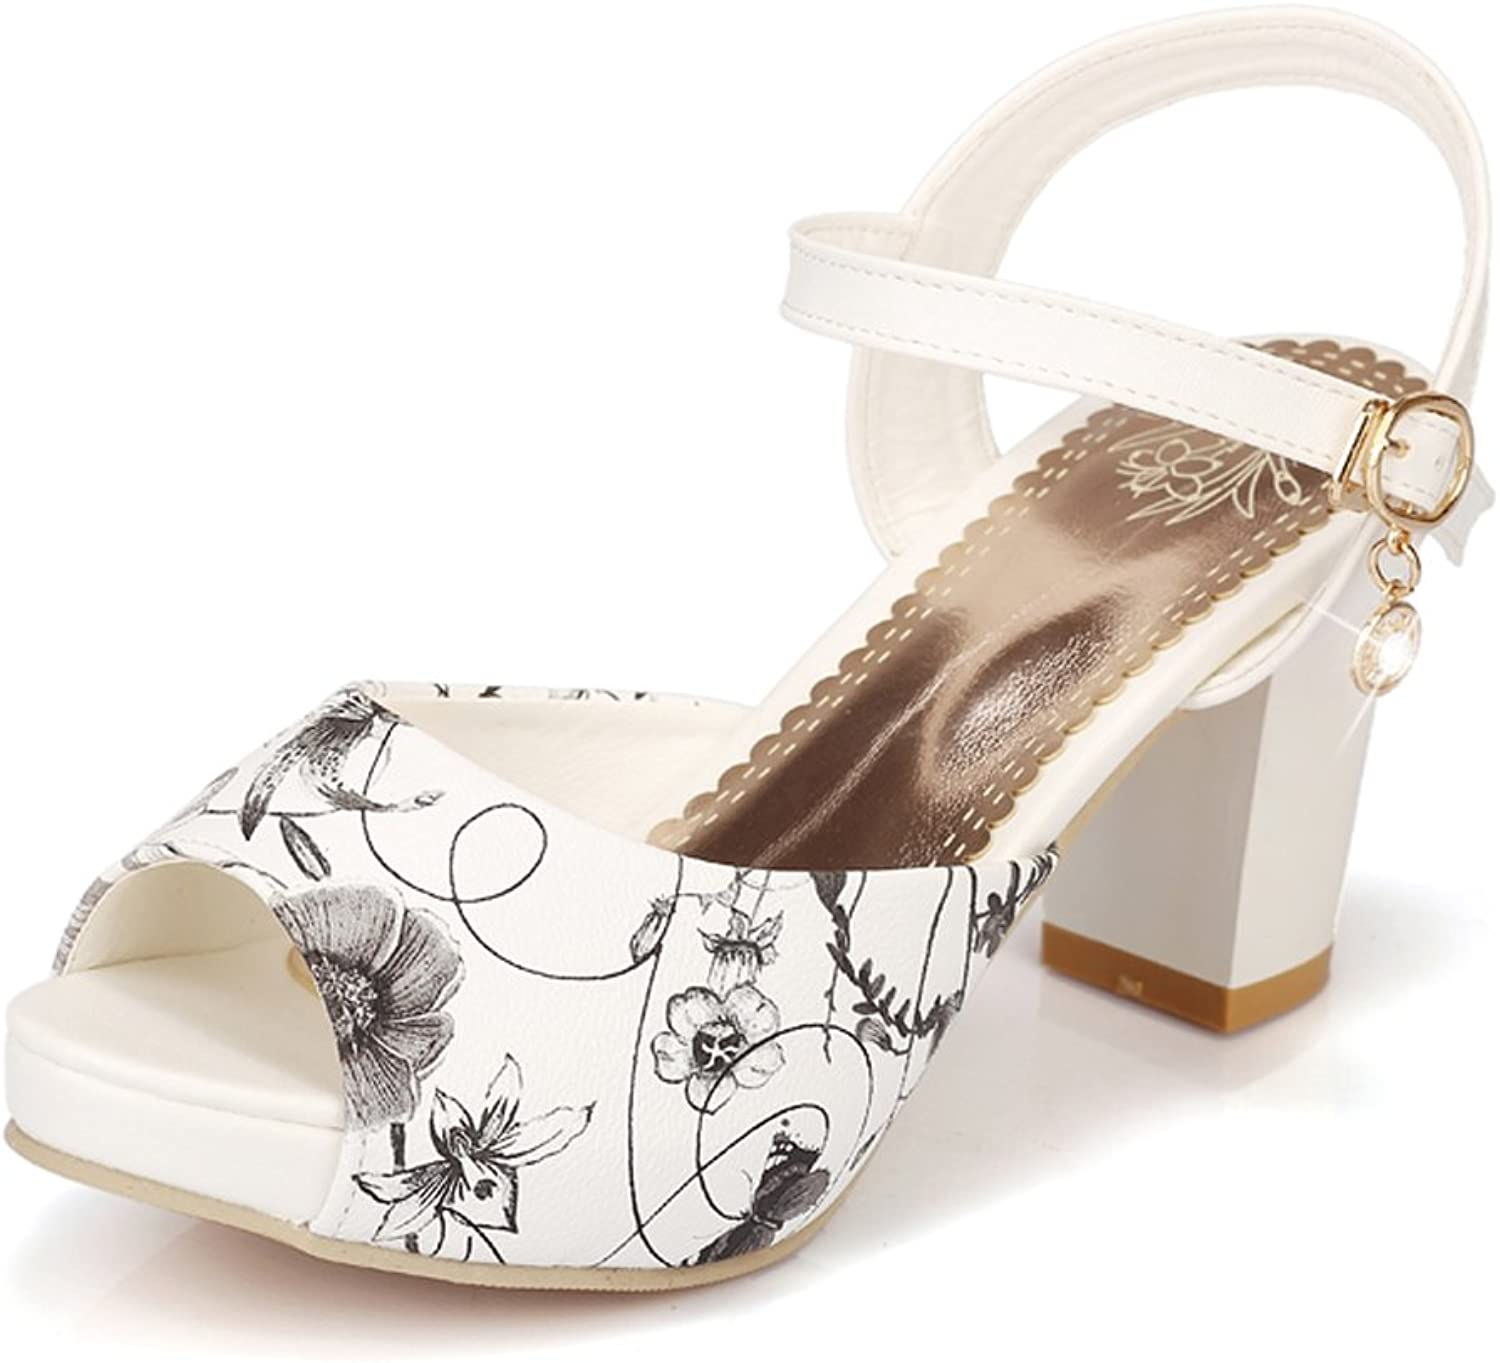 AIWEIYi Womens Print Open Toe Square High Heel Ankle Strap Strappy Sandals White